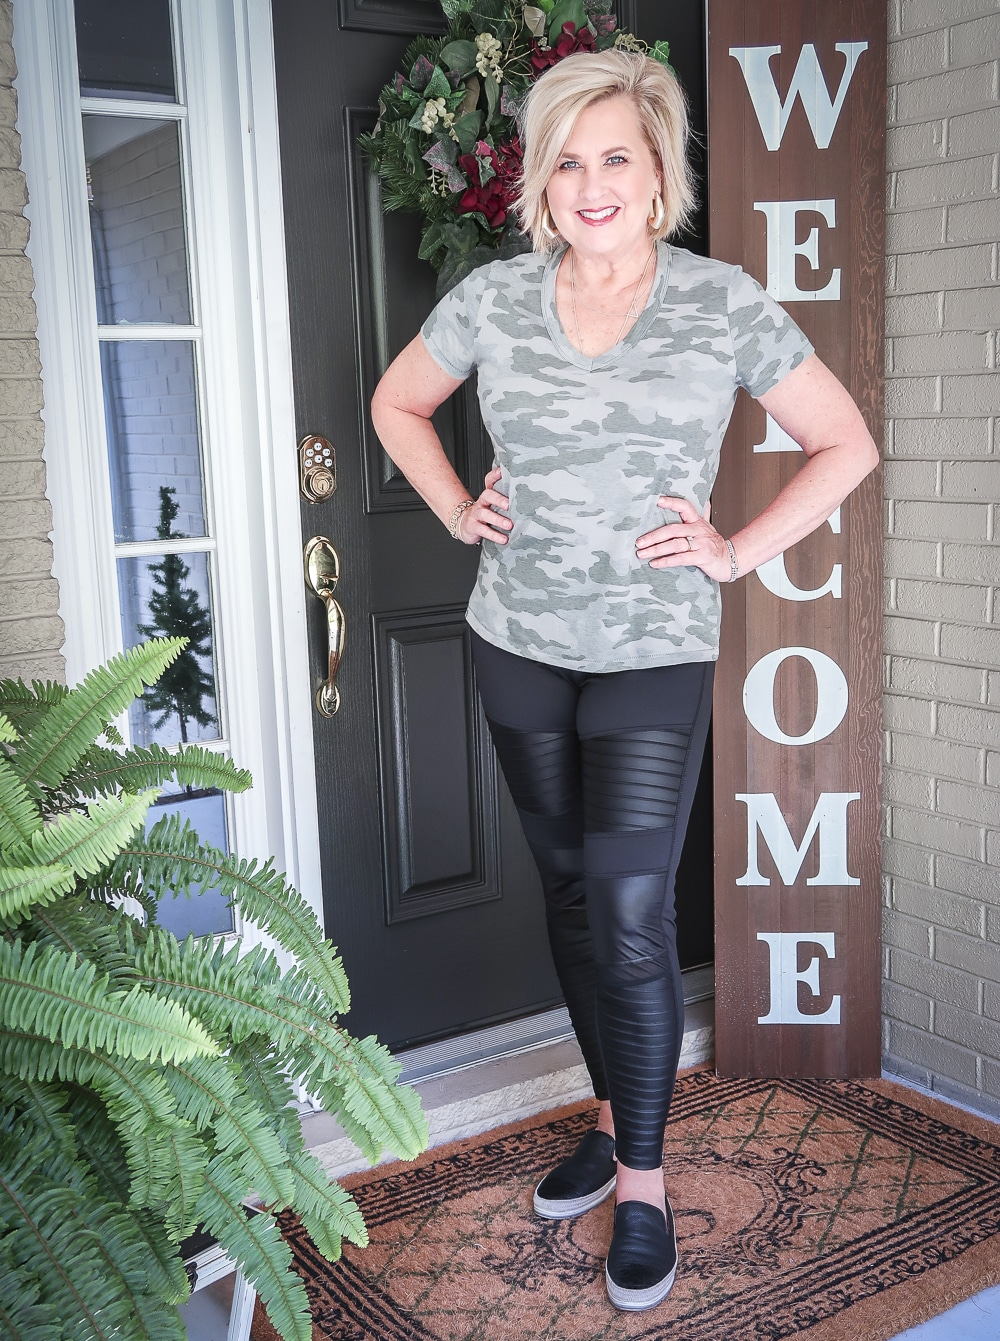 Fashion Blogger 50 Is Not Old is doing a Tuesday Try-On Session with Target and styling a camo v-neck tee shirt and black moto leggings